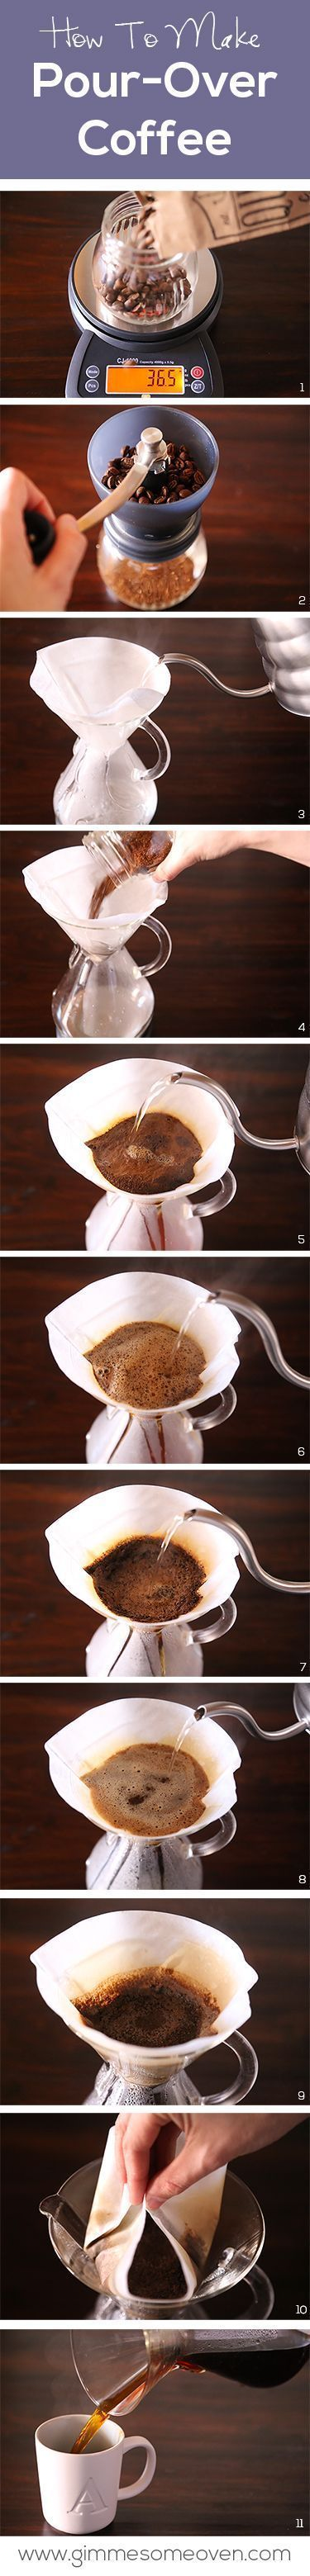 How To Make Pour-Over Coffee - Coffee Grinder - Ideas of Coffee Grinder #CoffeeGrinder…